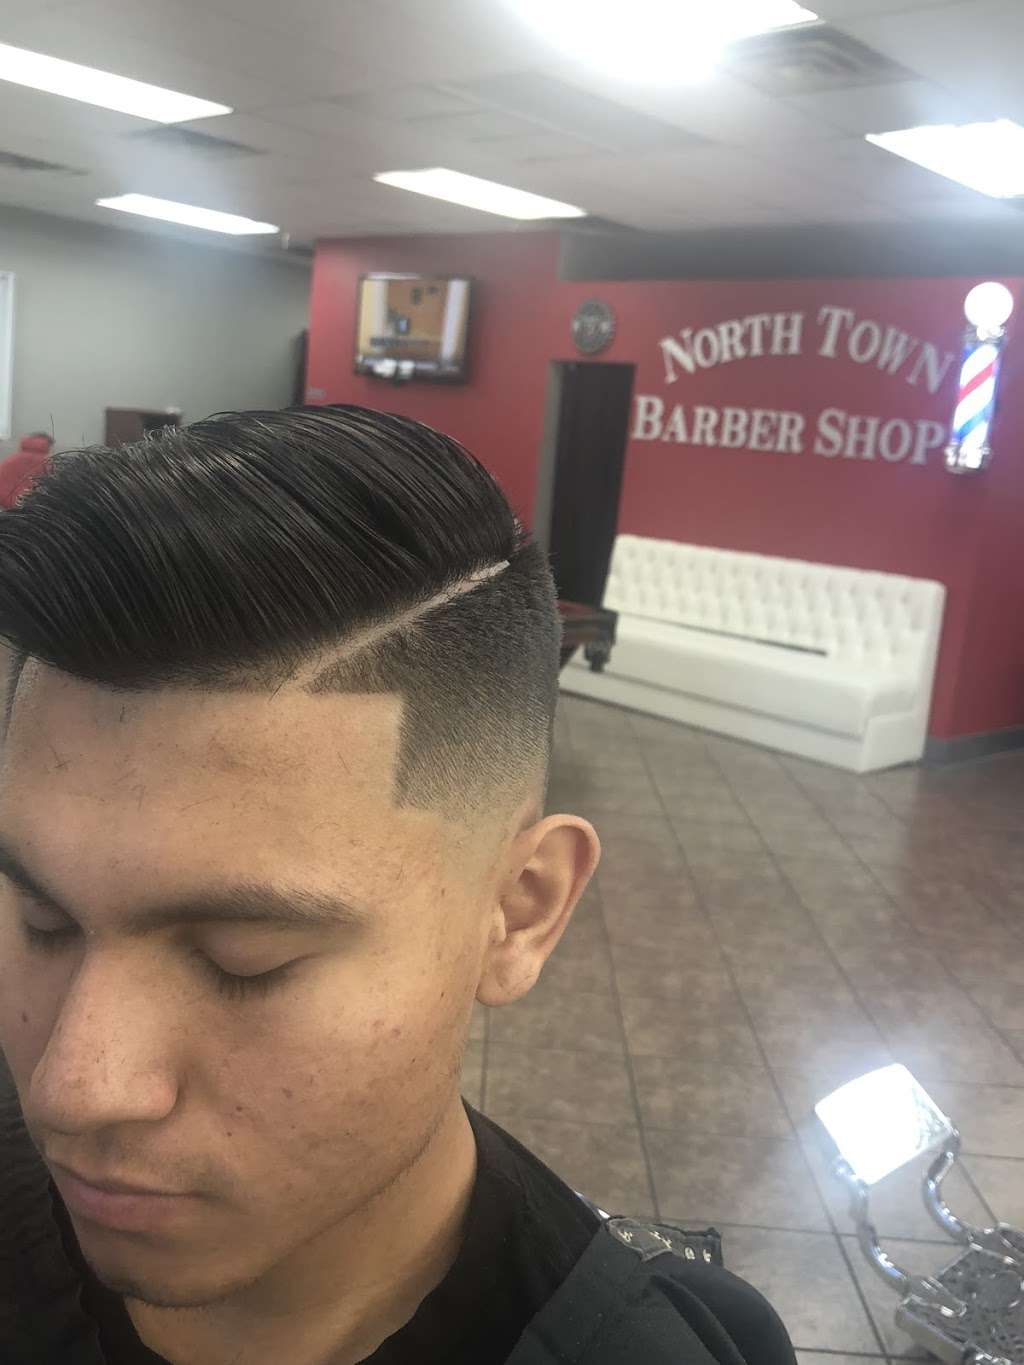 North Town Barber Shop - hair care  | Photo 4 of 5 | Address: 3012 E Griswold St Ste#4, North Las Vegas, NV 89030, USA | Phone: (702) 382-1160